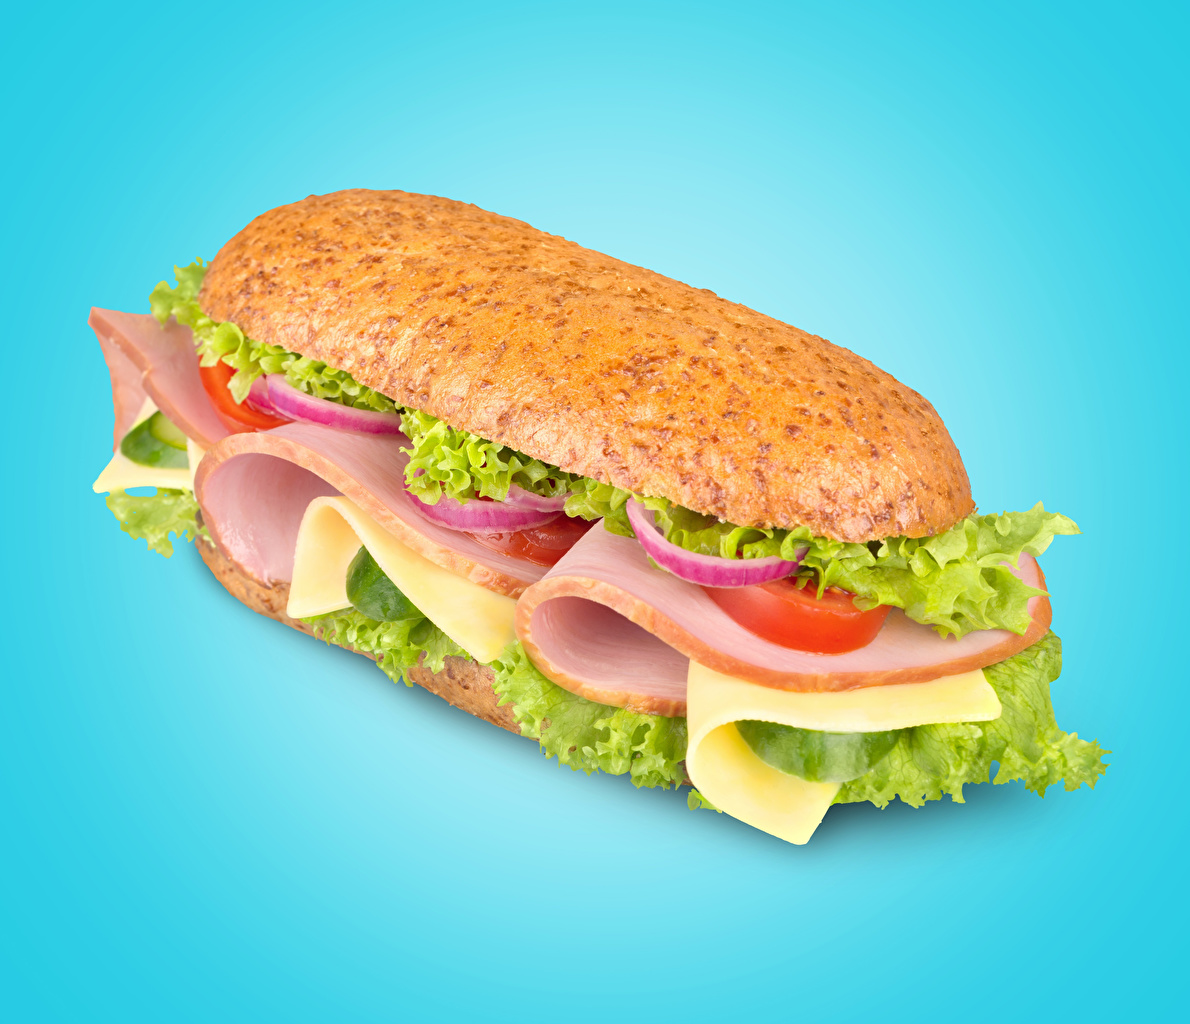 Picture Sausage Sandwich Fast food Food Vegetables Colored background